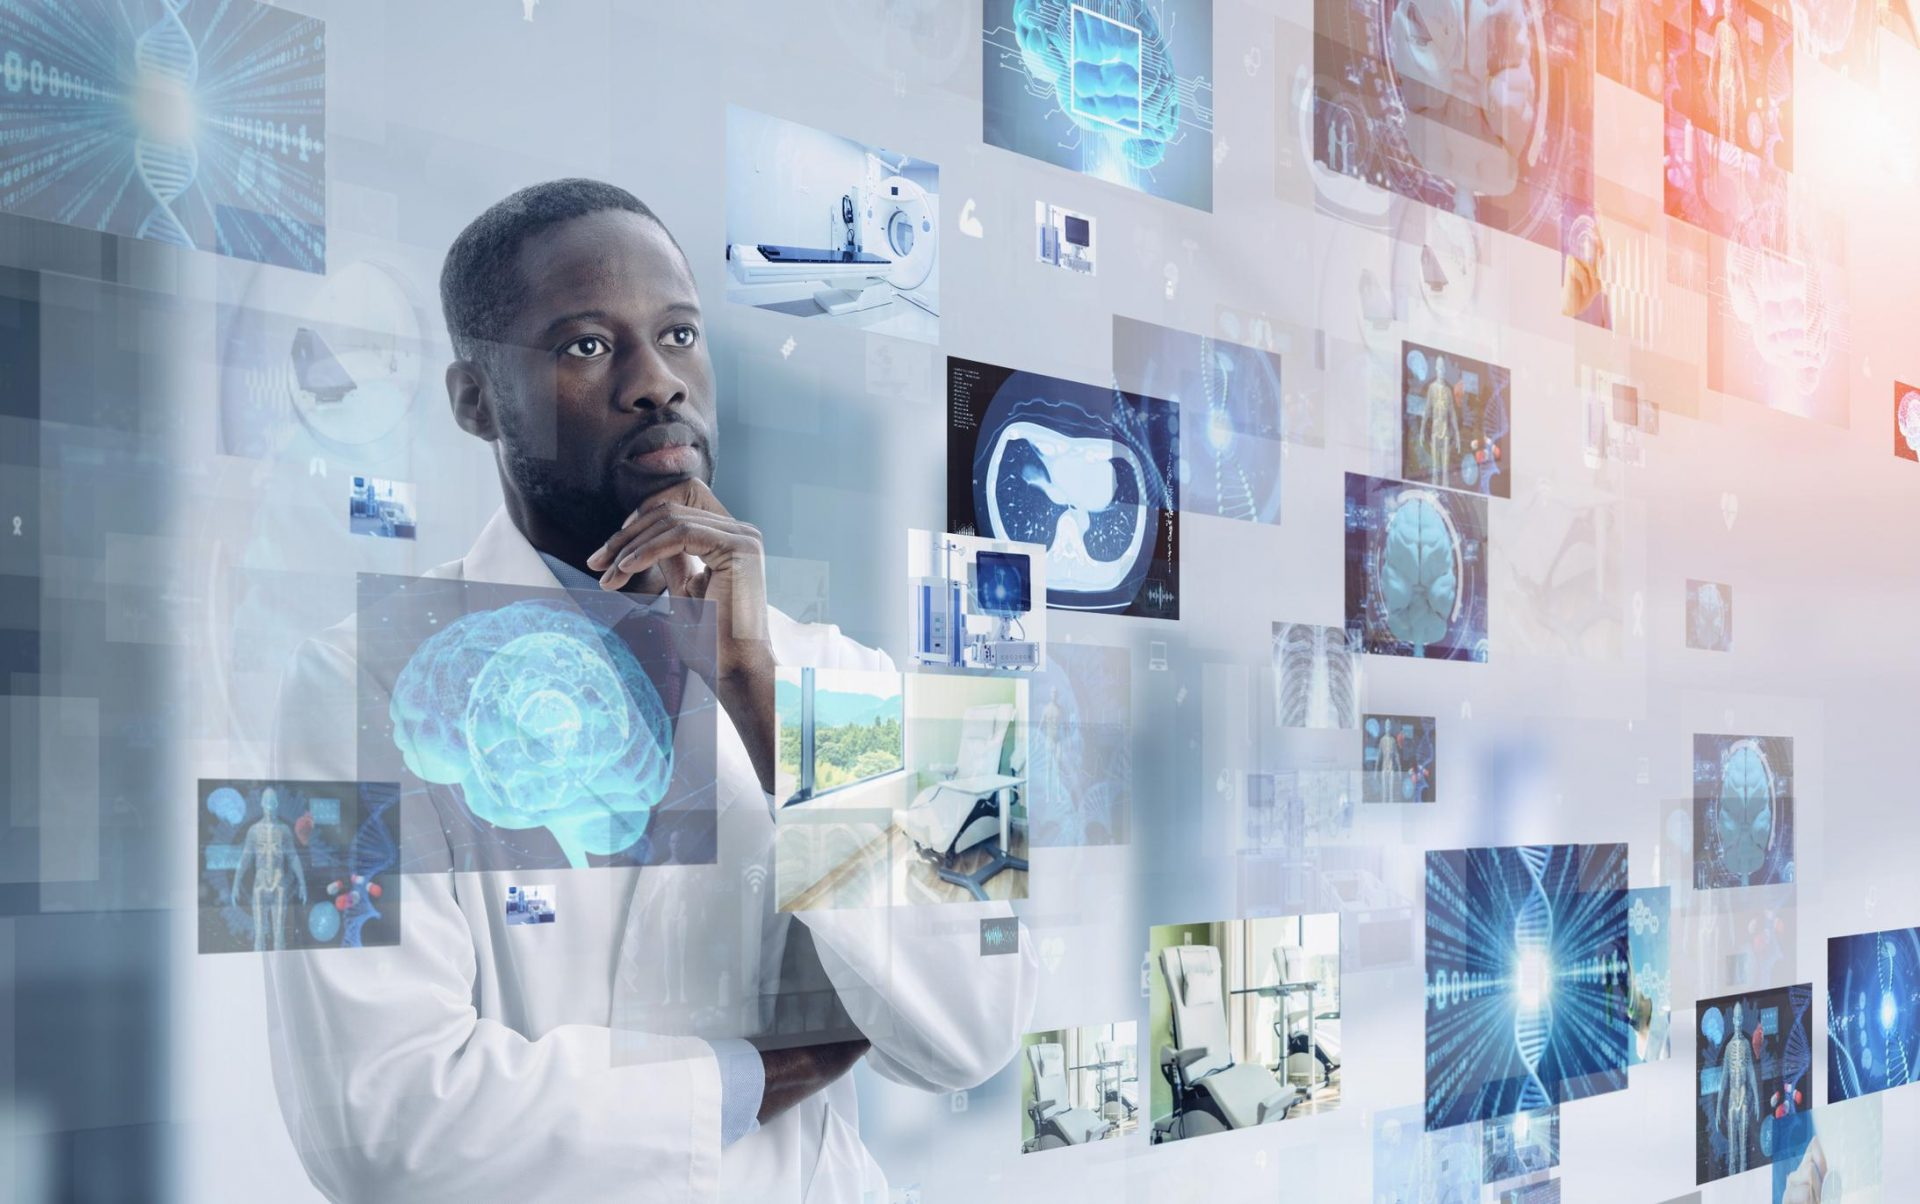 ID Verification Service: New World of Healthcare Technology